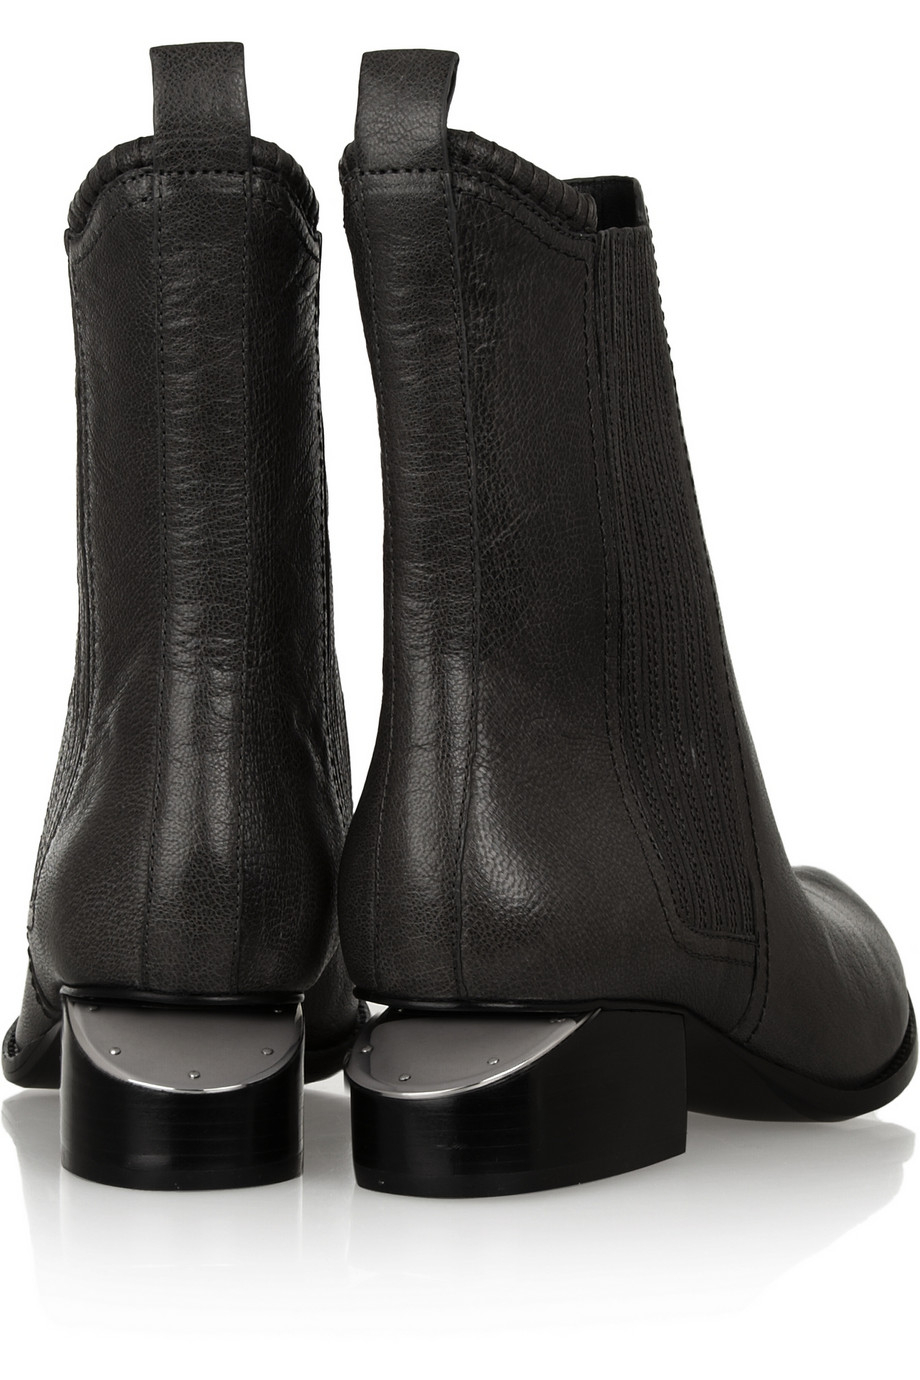 Alexander Wang Anouck Cutoutheel Leather Ankle Boots in Anthracite (Black)